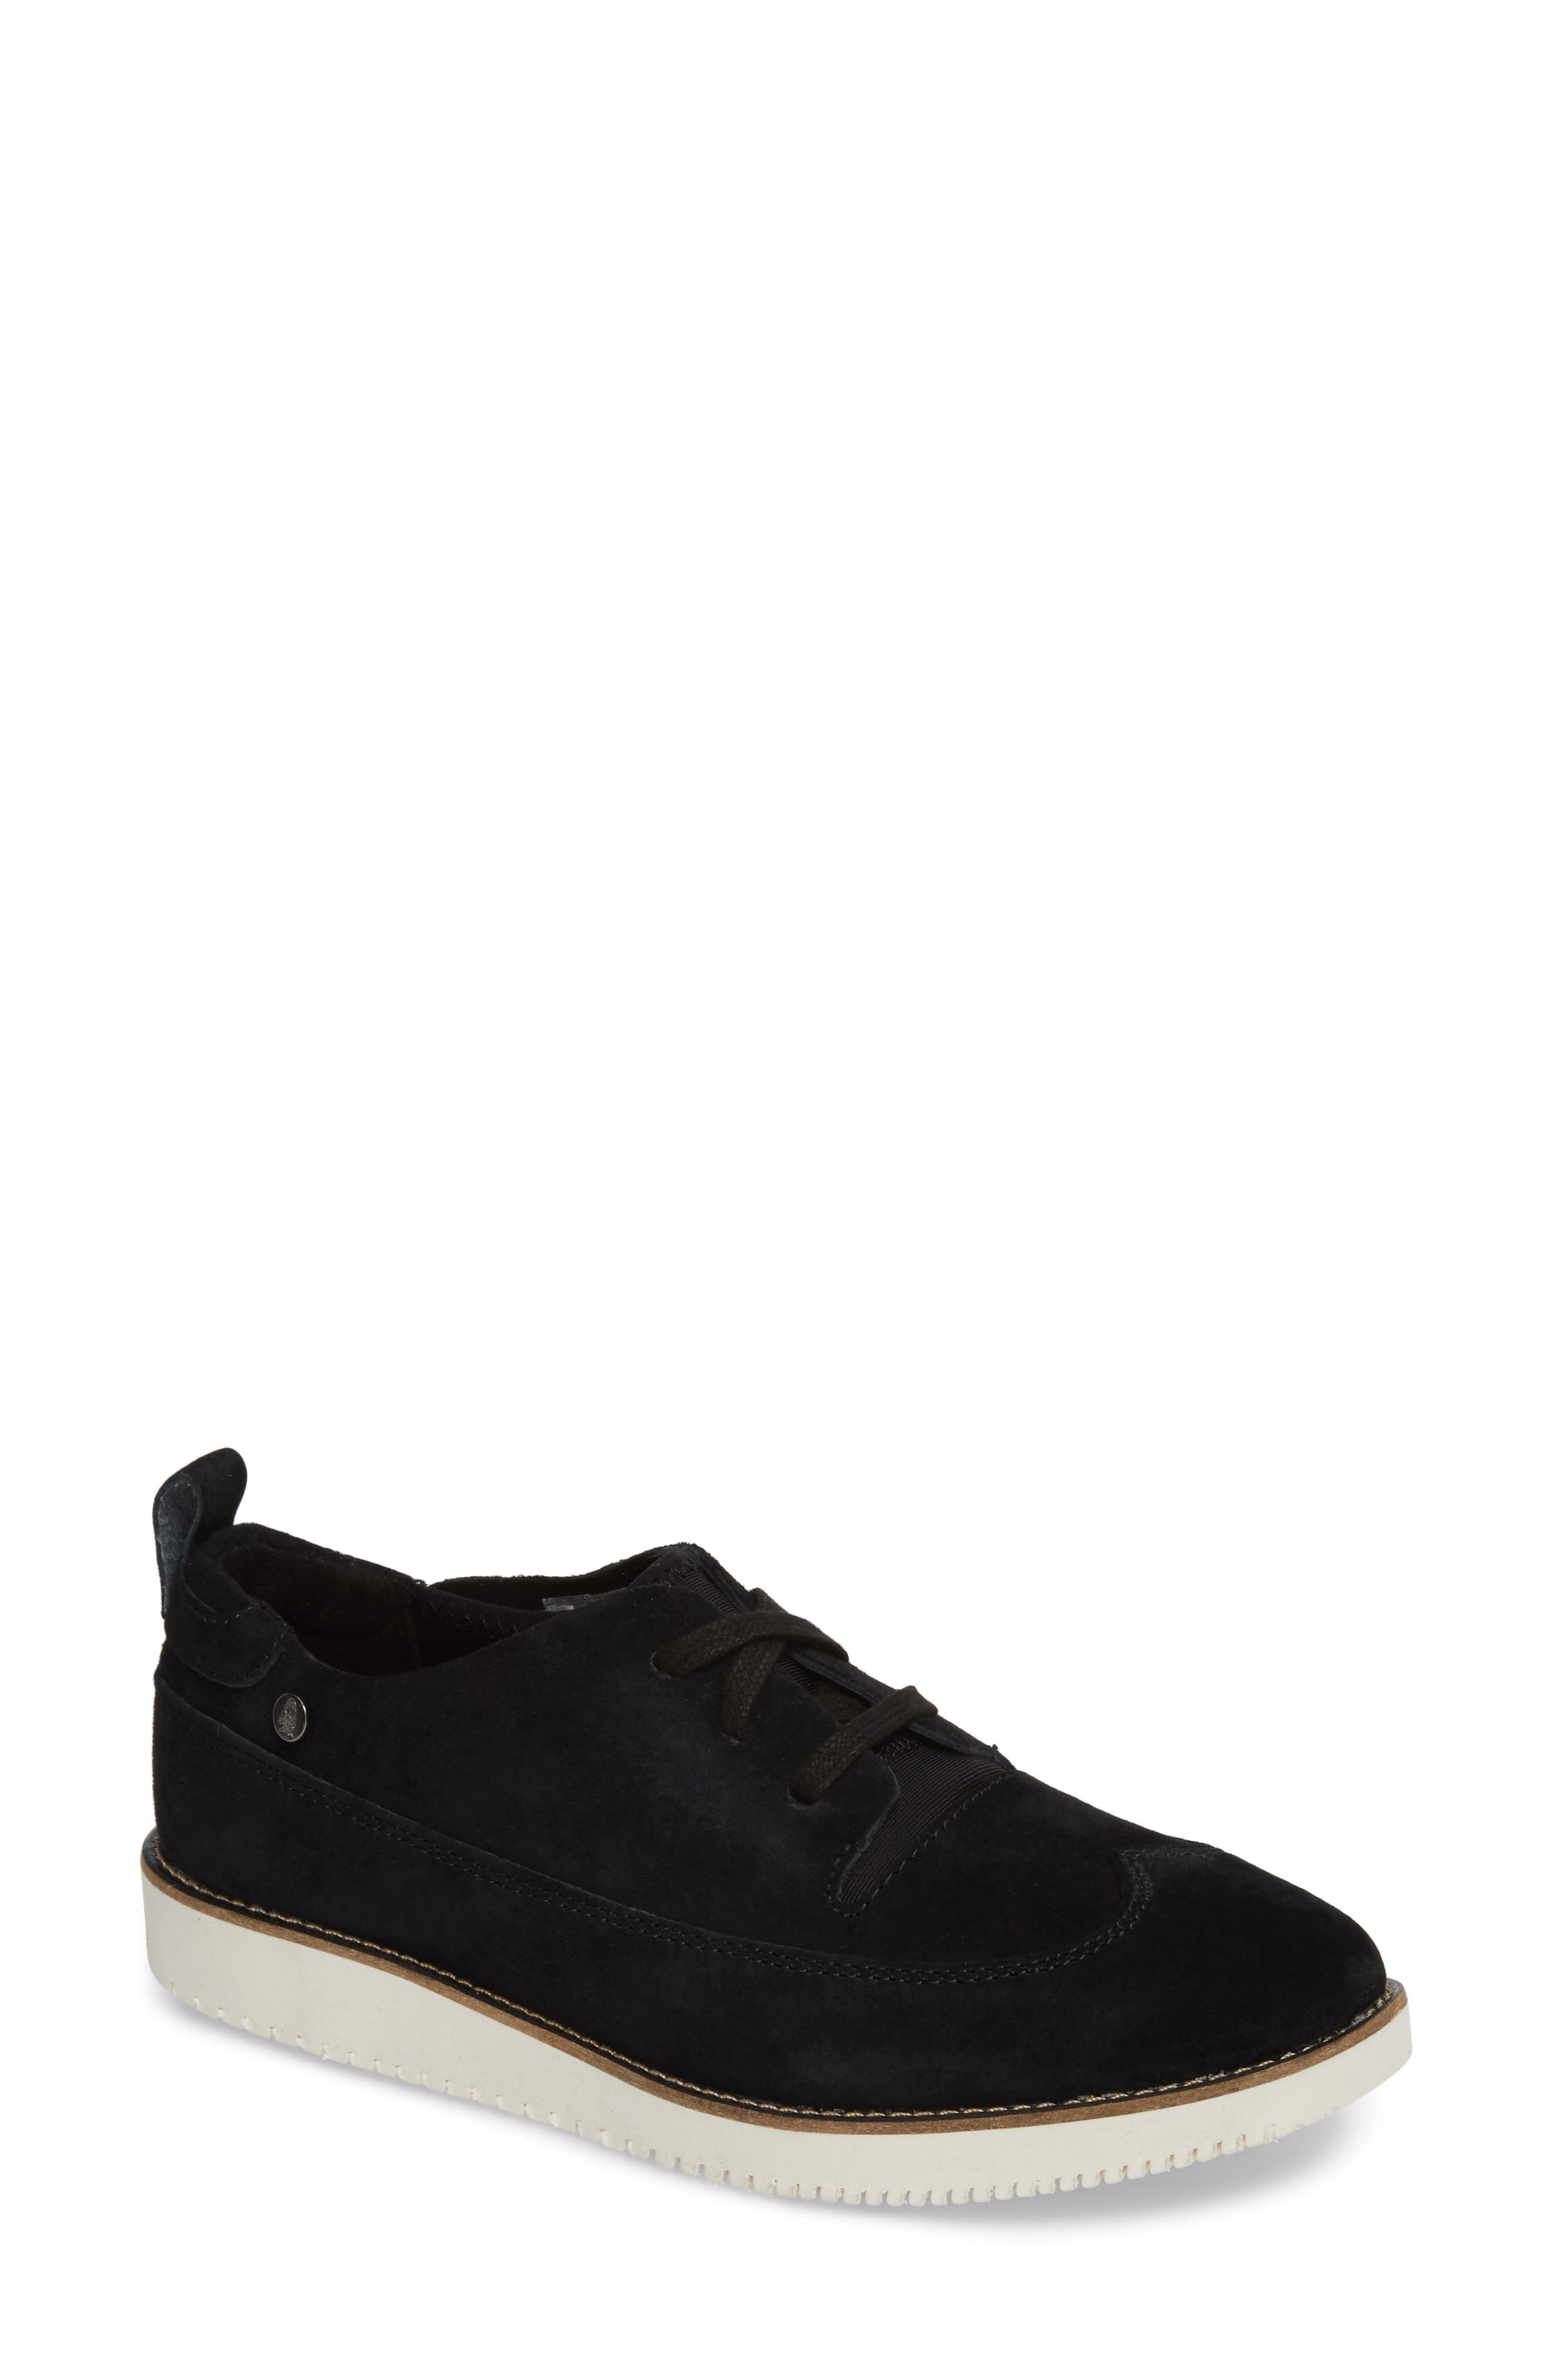 Chowchow Oxford,                             Main thumbnail 1, color,                             BLACK SUEDE